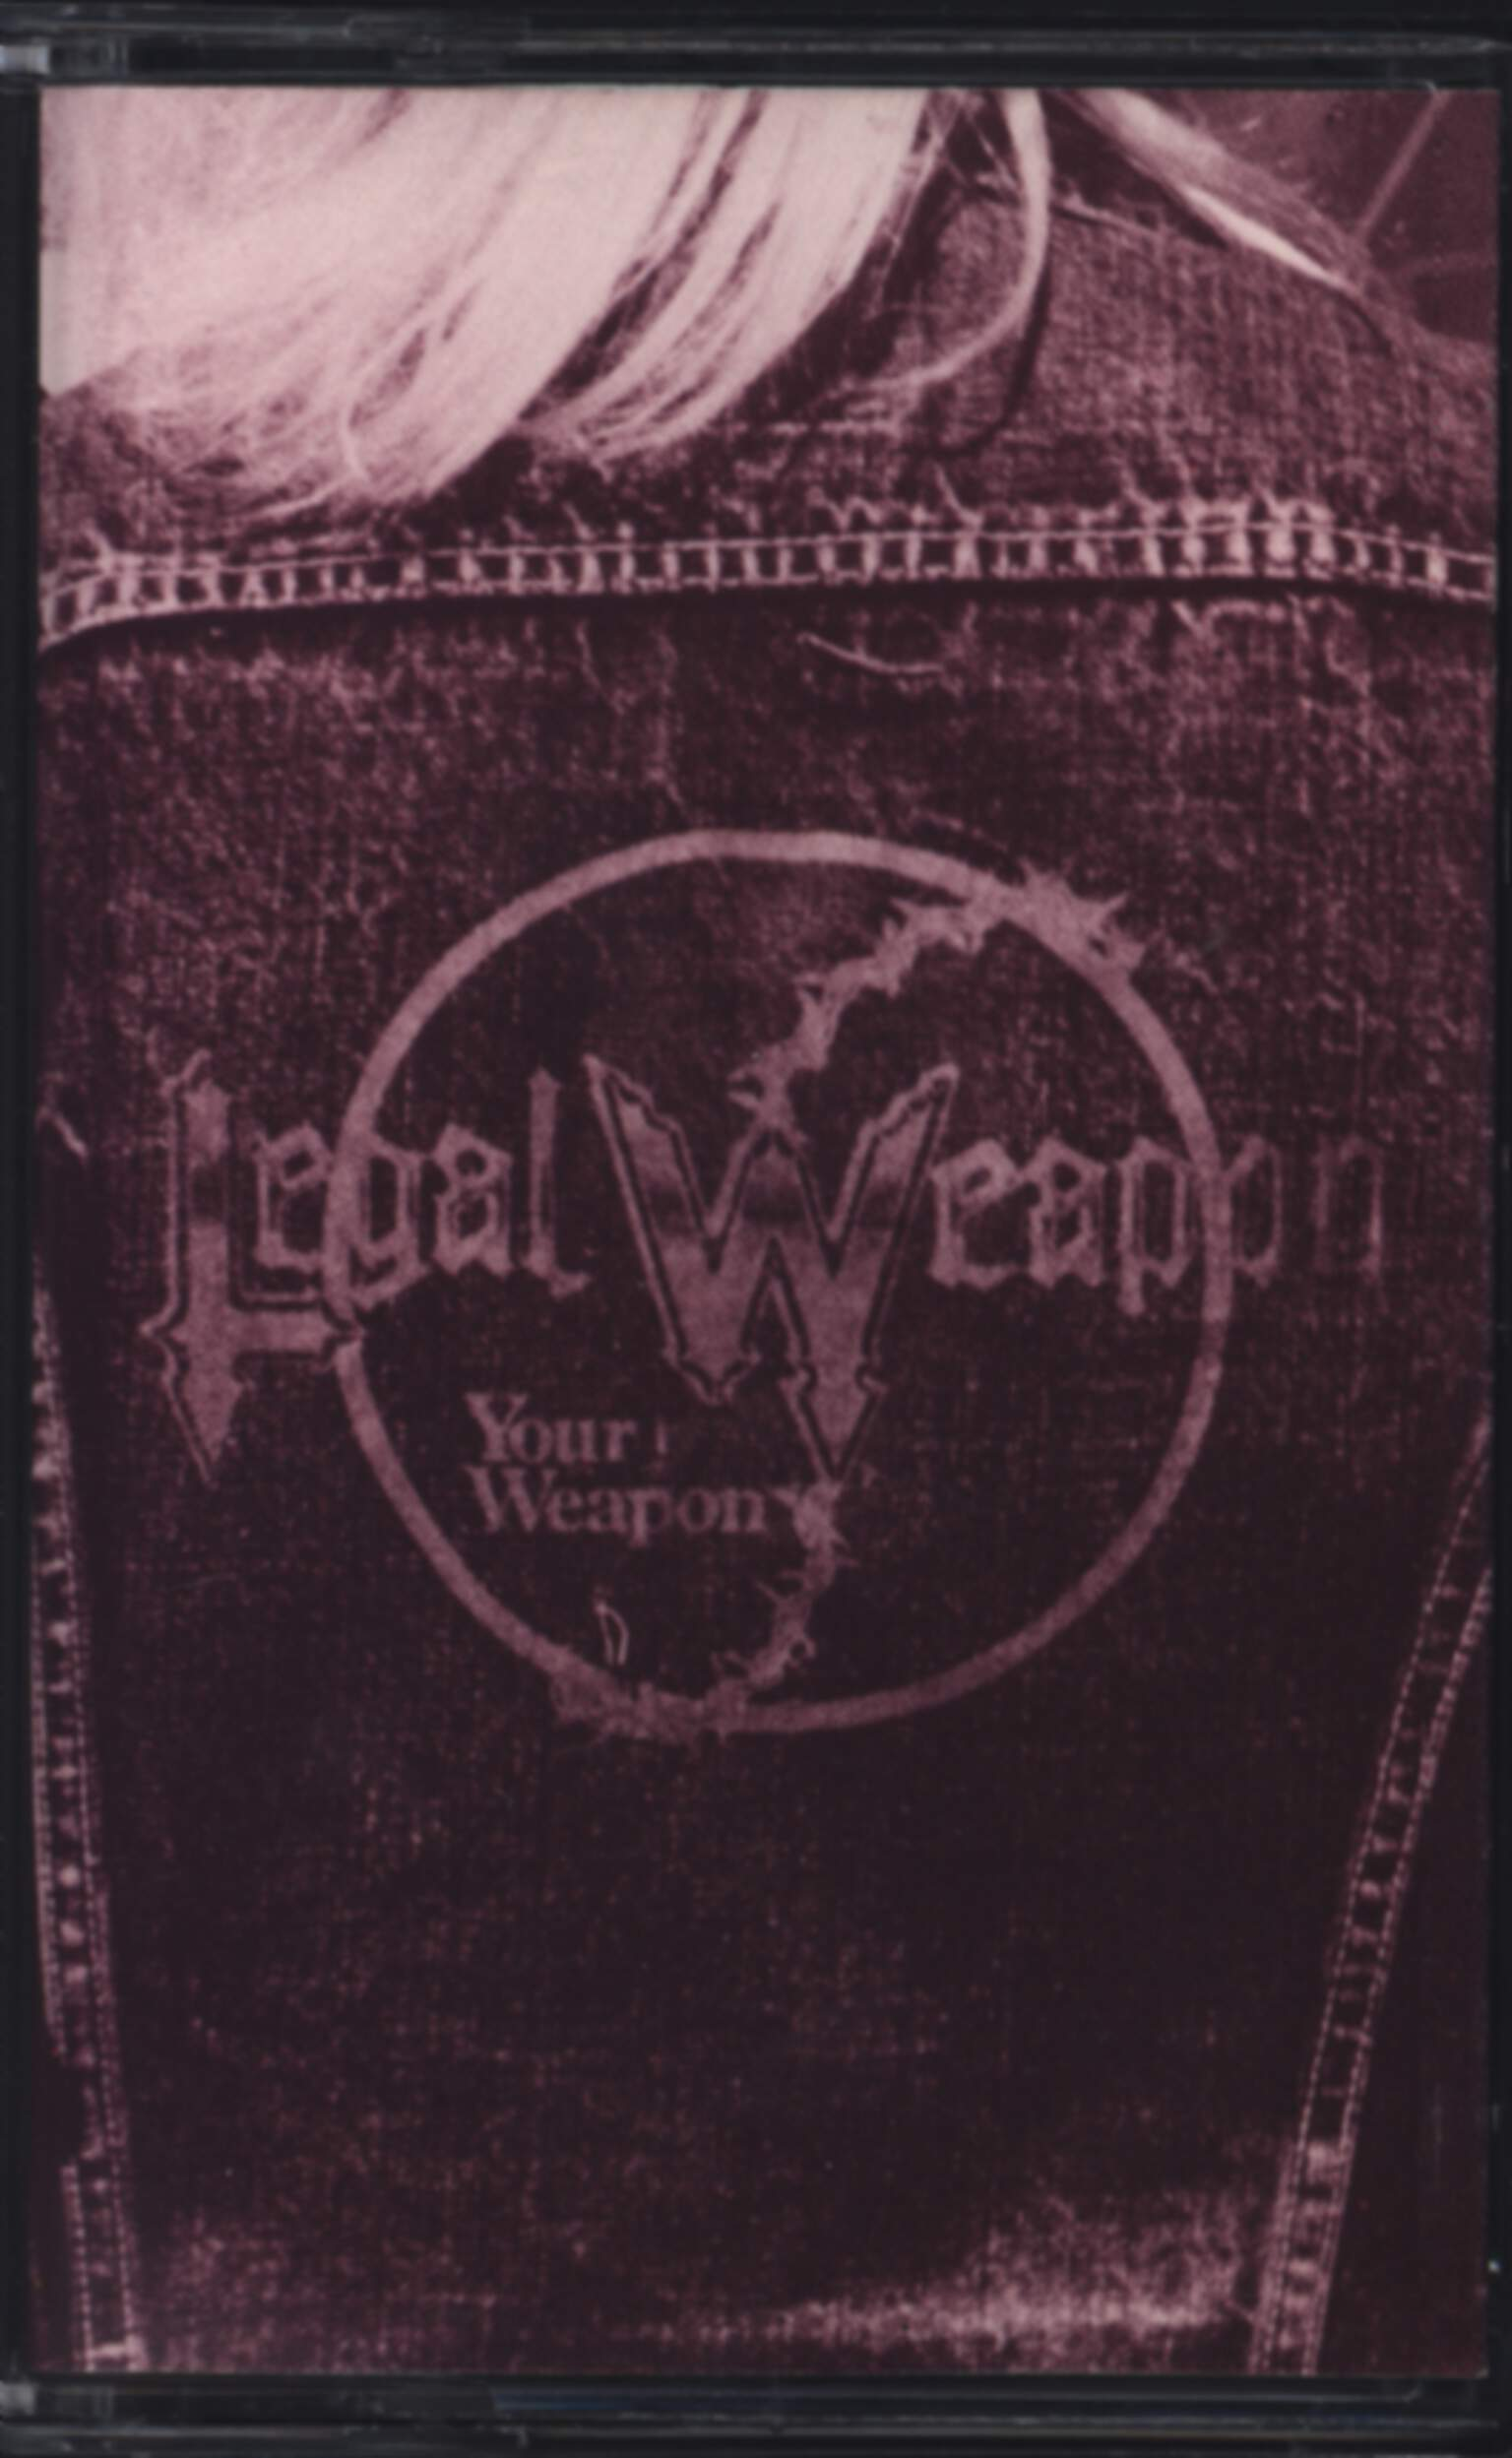 Legal Weapon: Your Weapon, Compact Cassette